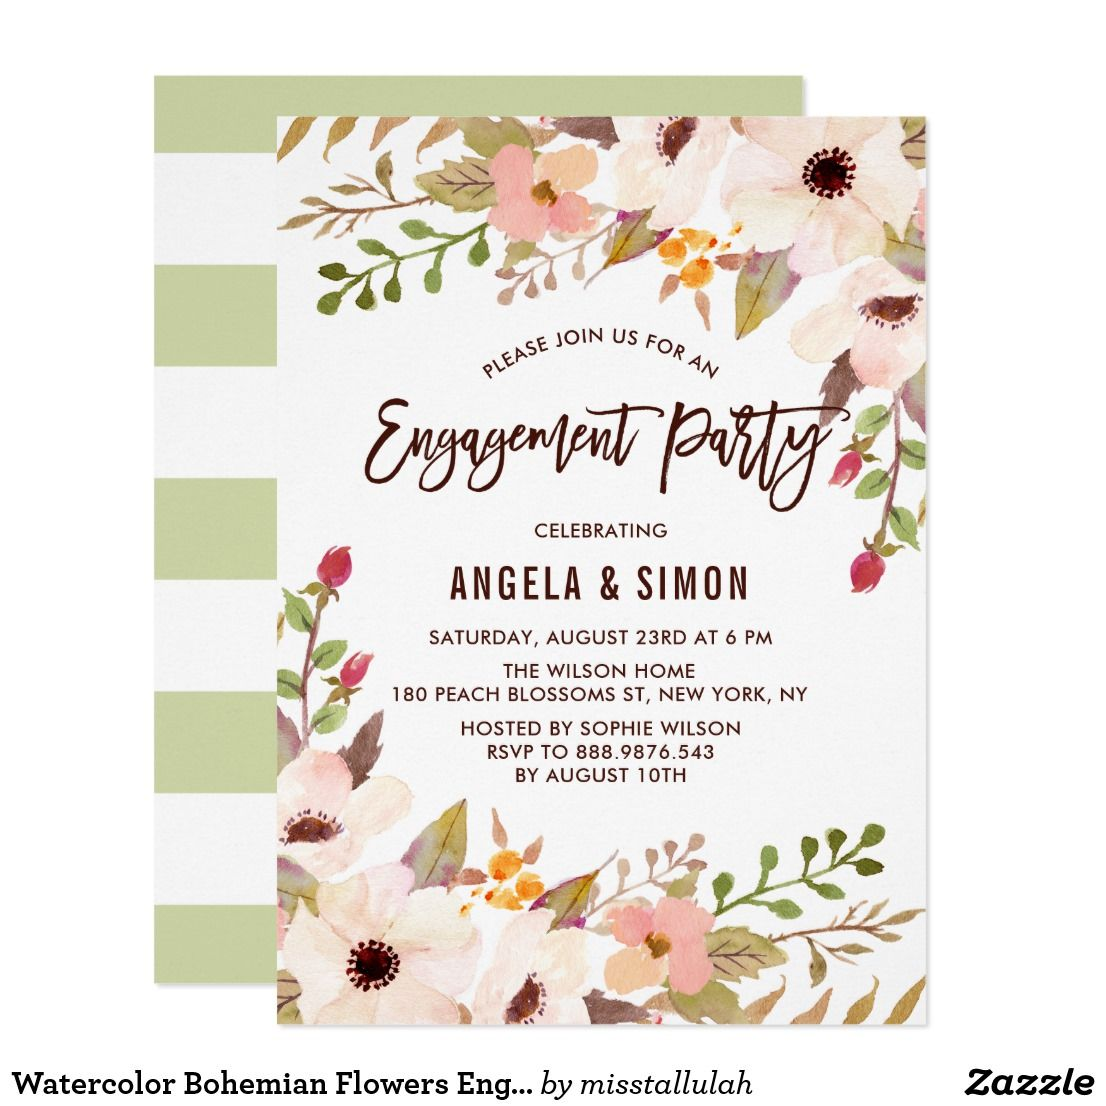 Watercolor Bohemian Flowers Engagement Party Card | Invites wedding ...